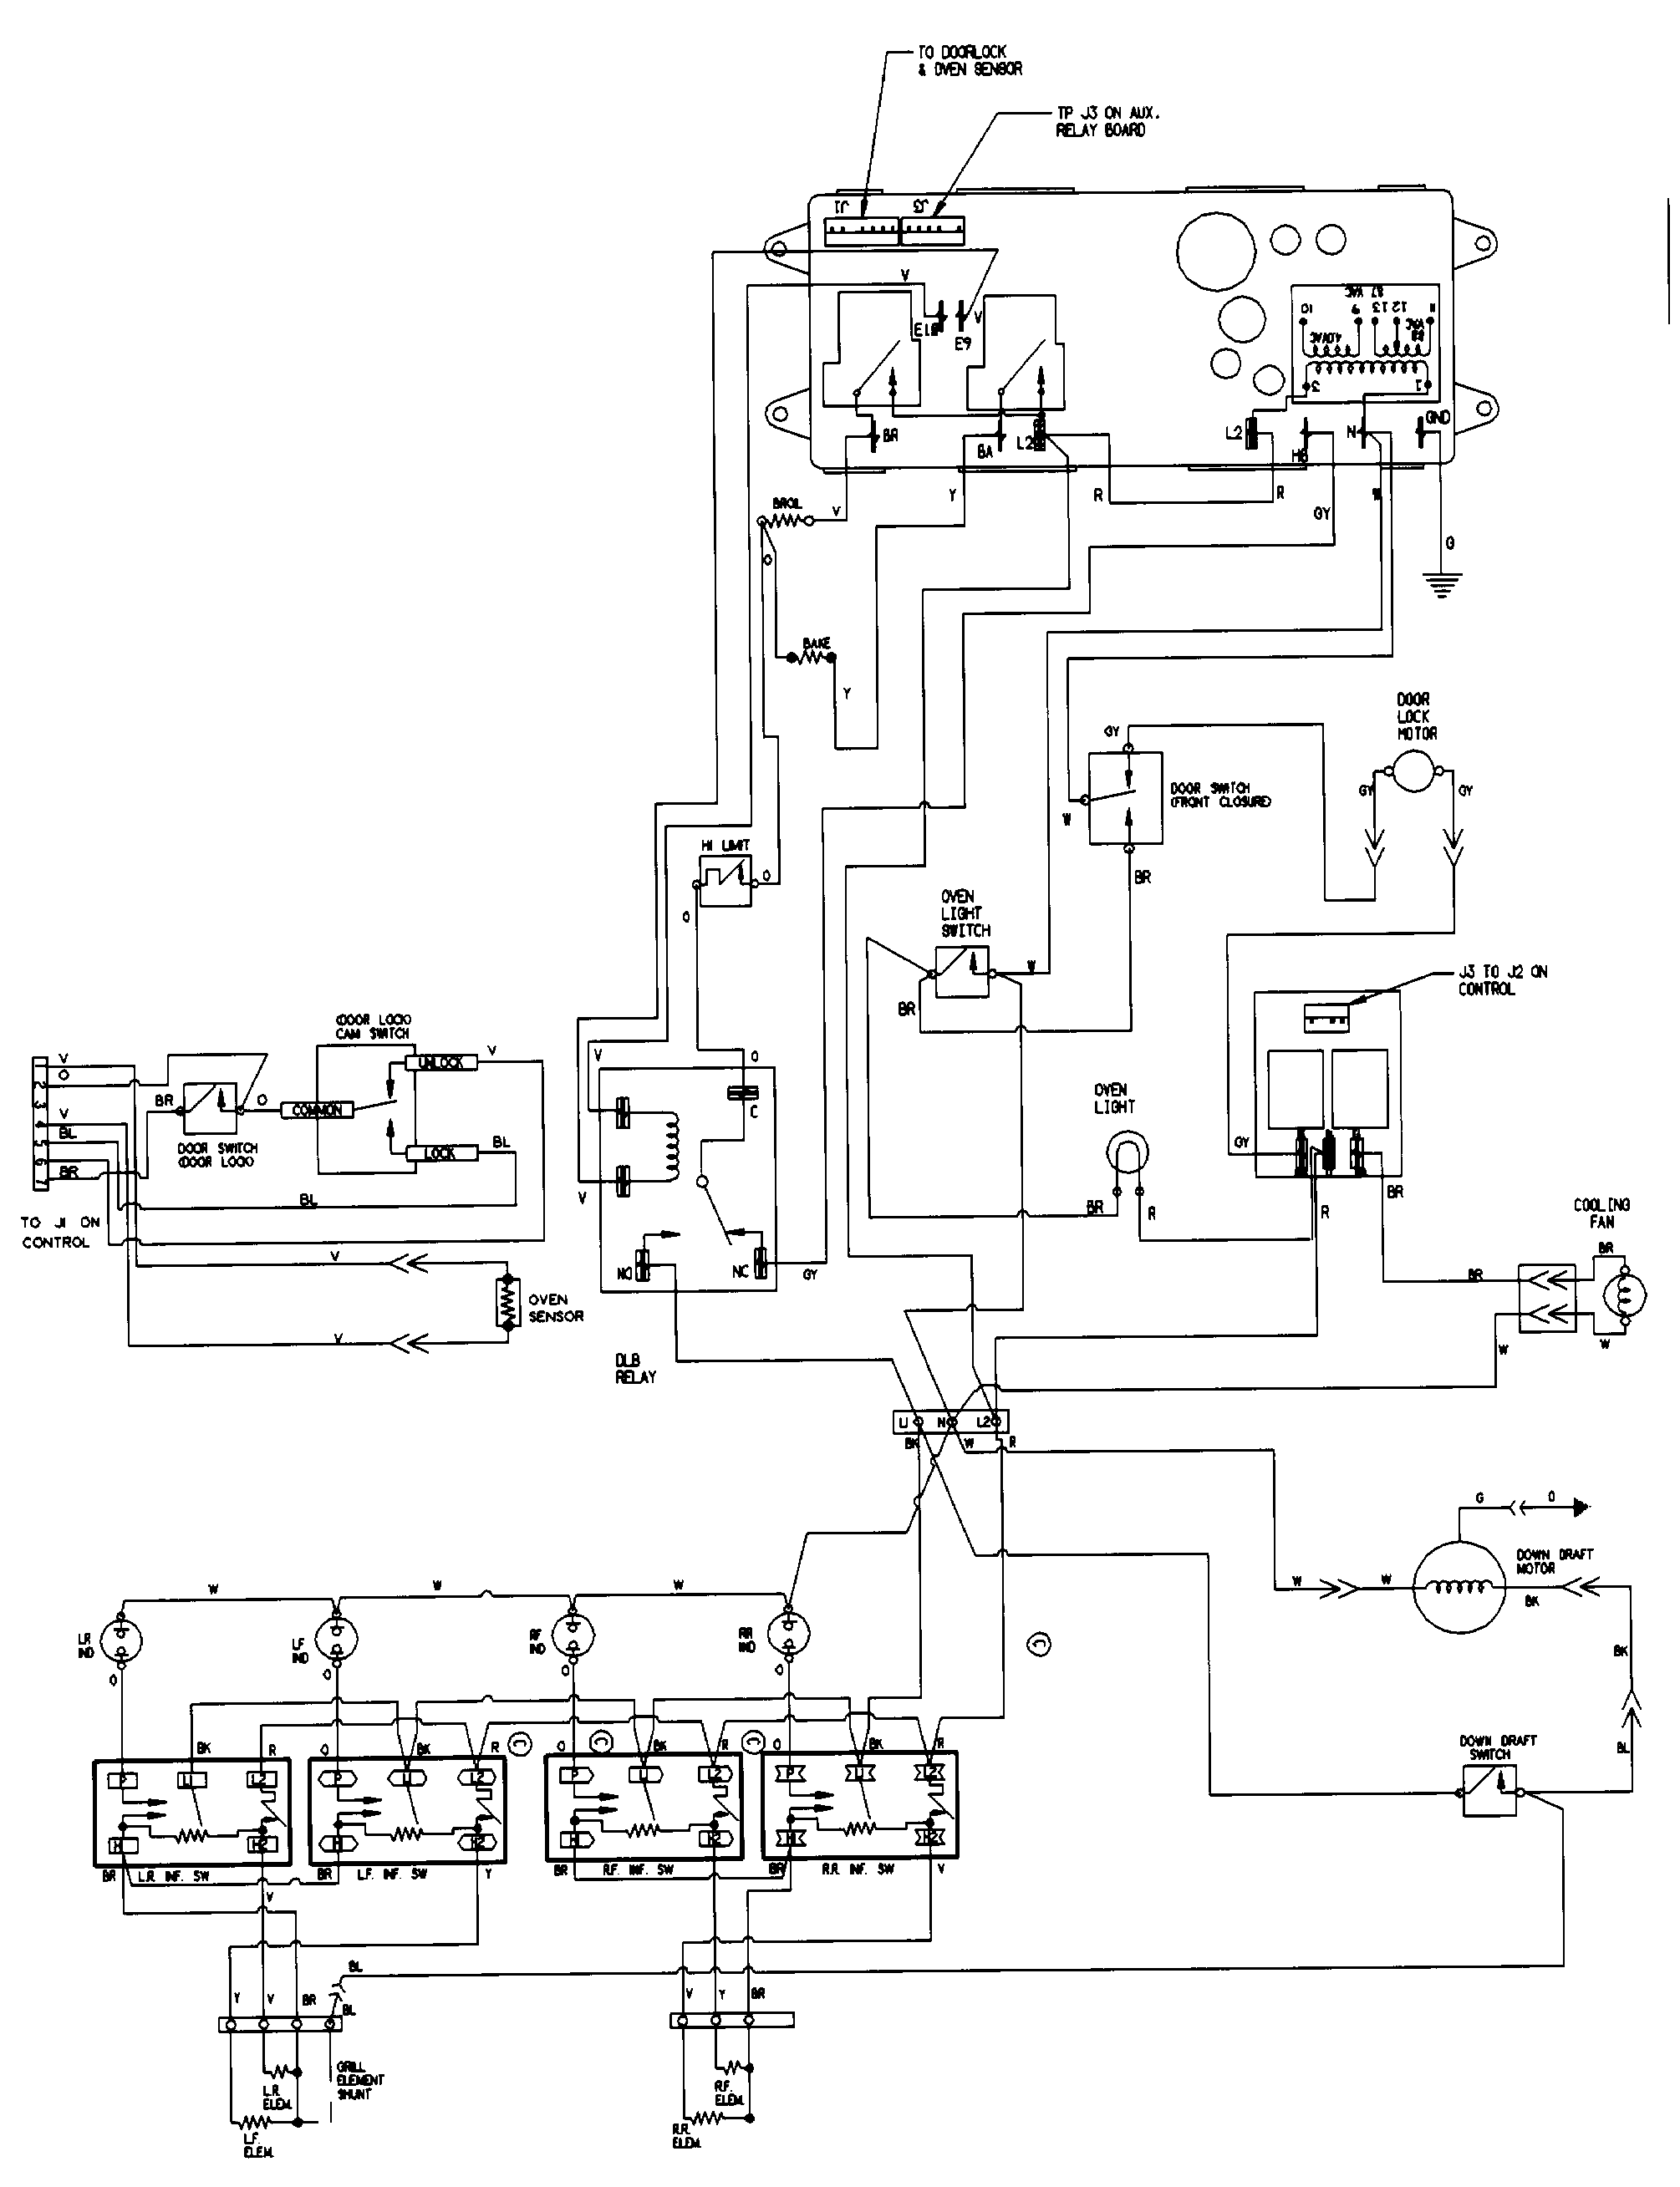 2000 Honda Goldwing Wiring Schematics Cooling System 1993 Shadow Phantom 750 Diagram Manual On